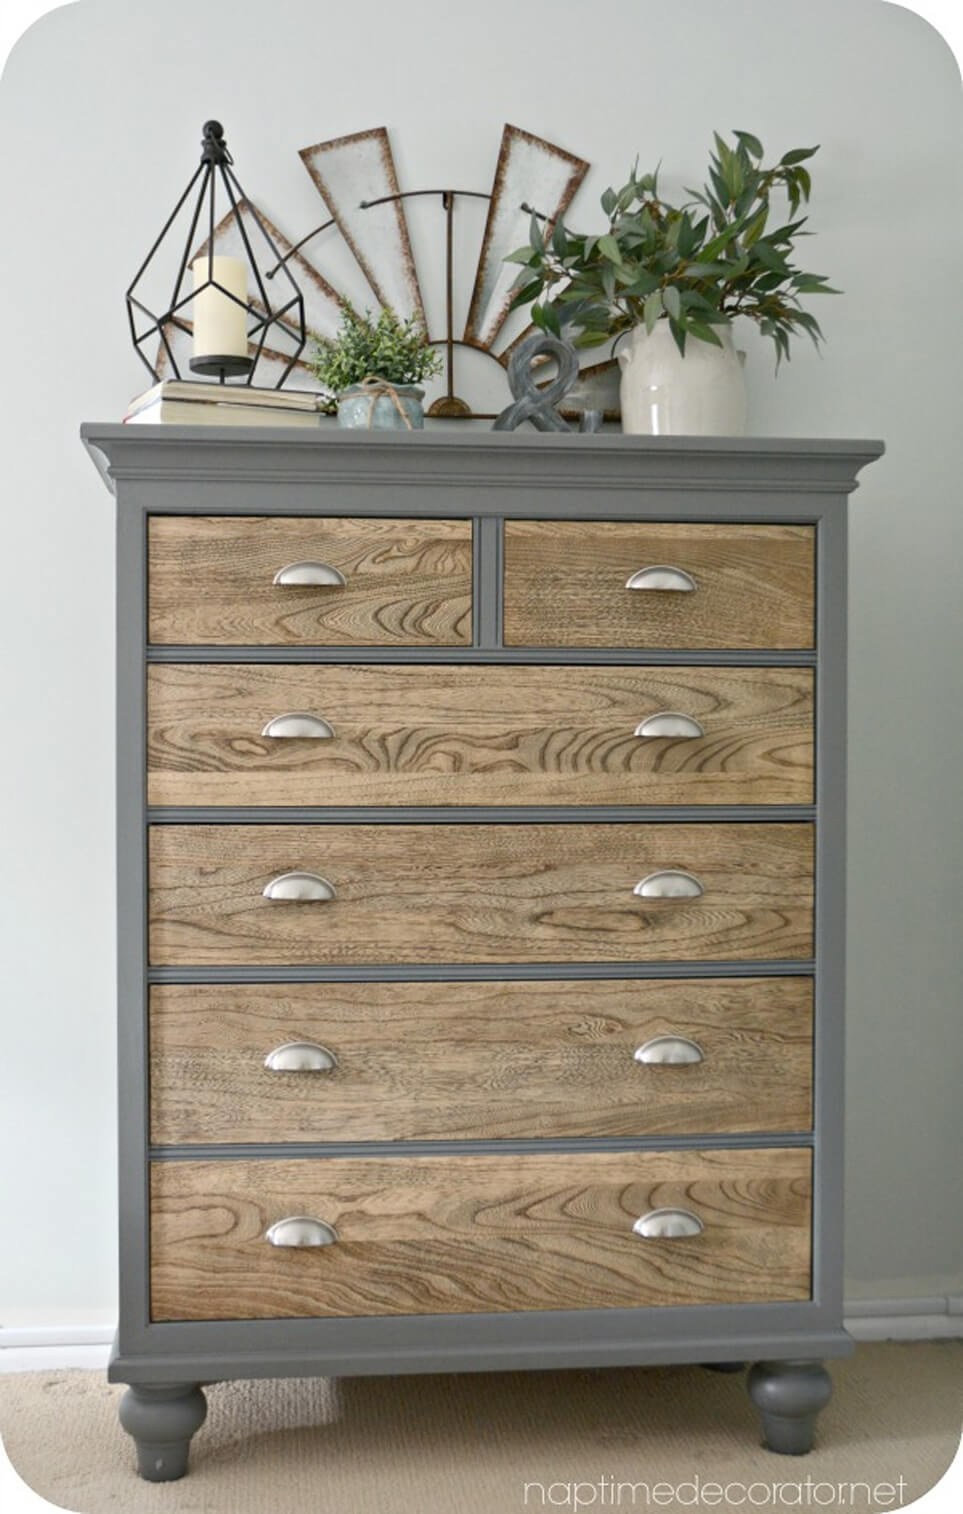 22. Prairie Cabin Chest of Drawers